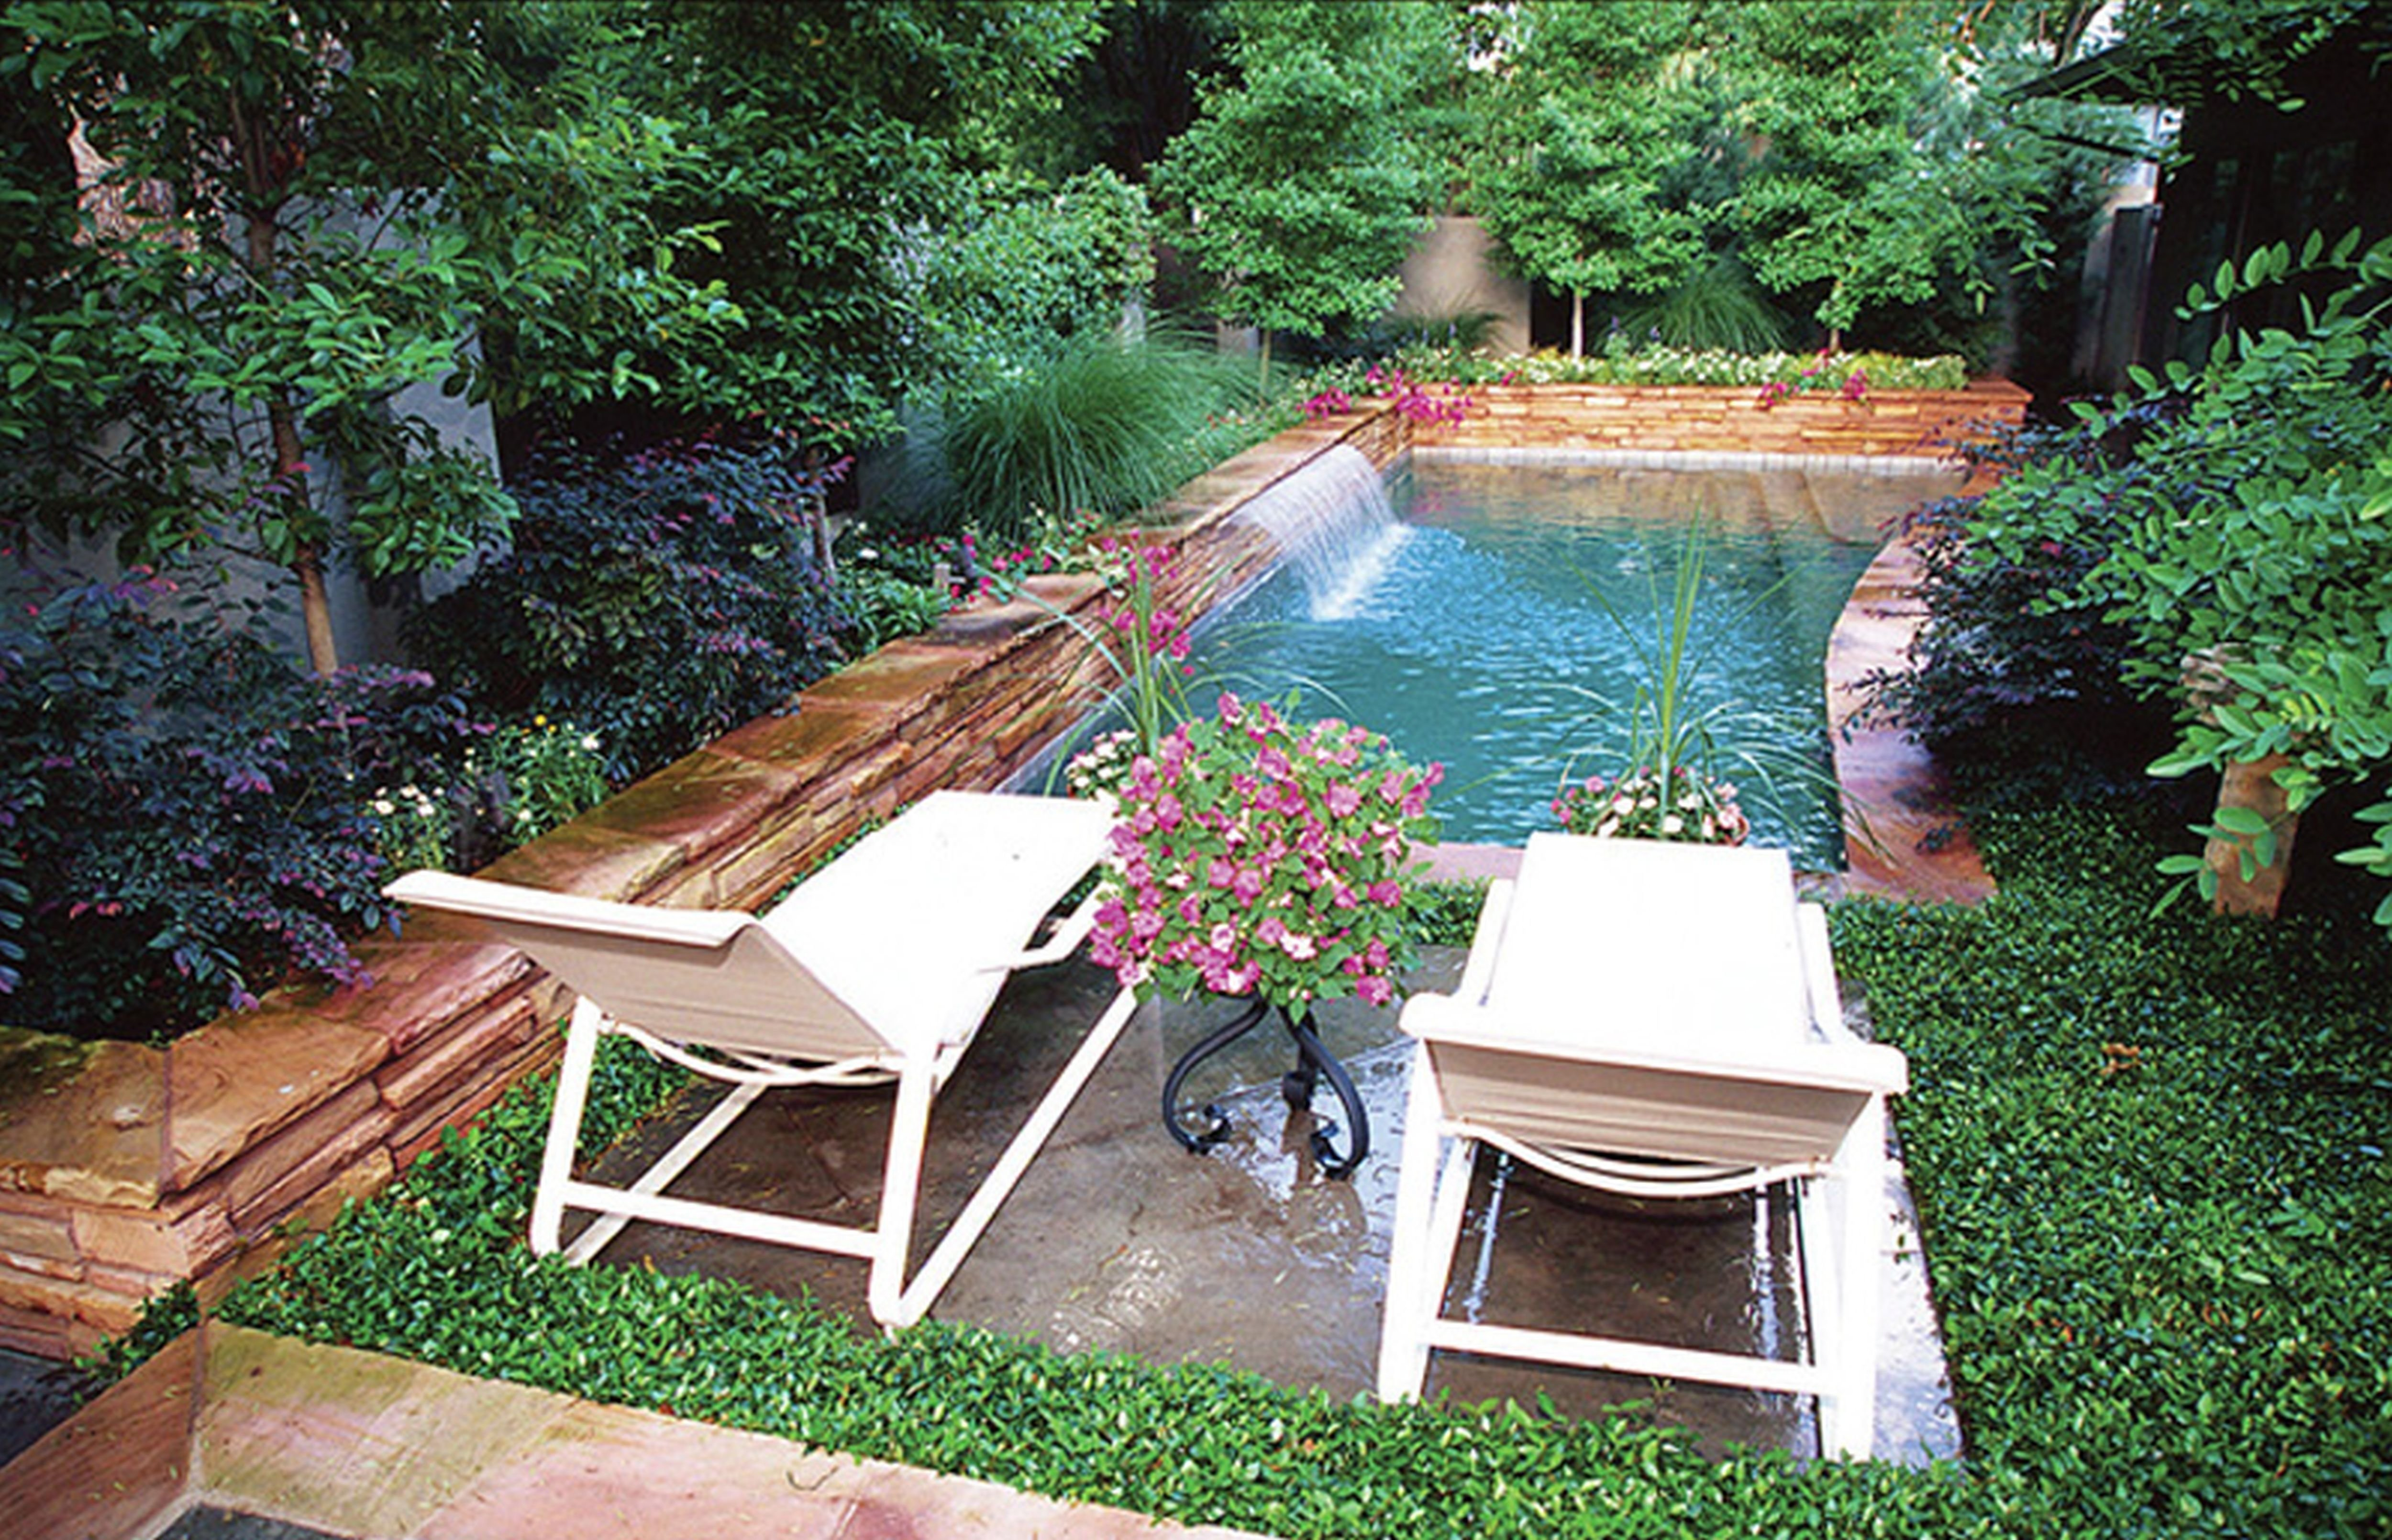 10 Wonderful Ideas For A Small Backyard beautiful small backyard ideas to improve your home look midcityeast 1